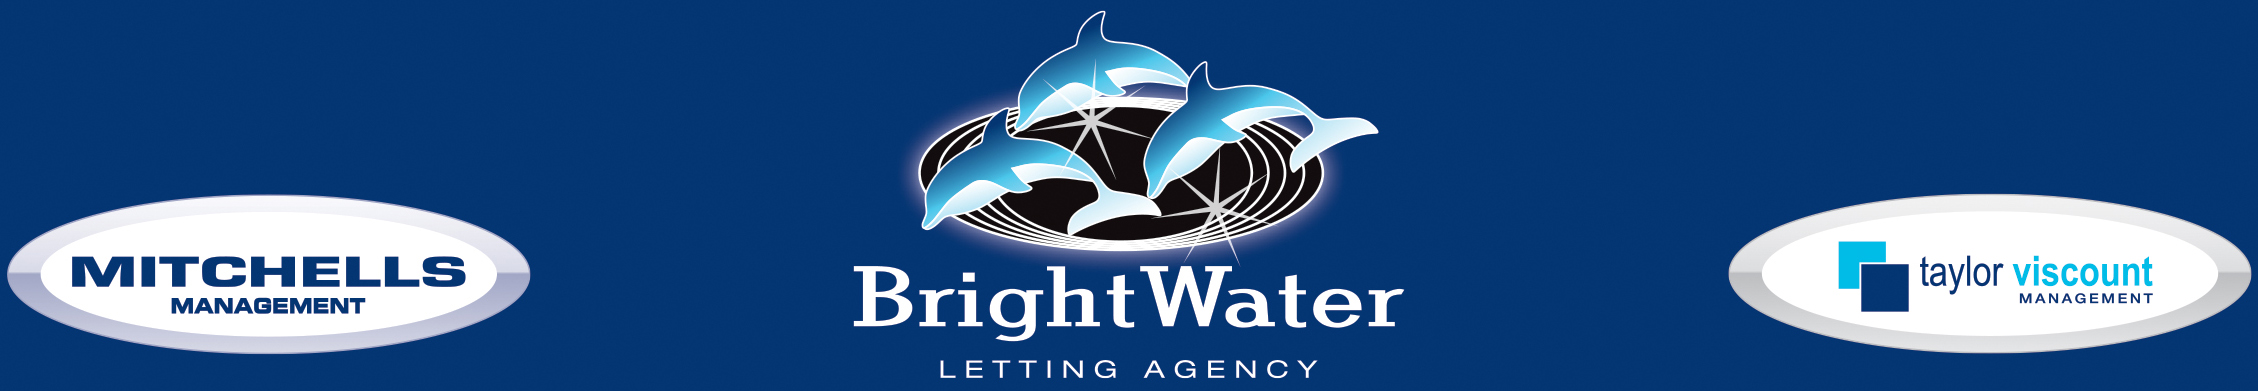 BrightWater Lettings